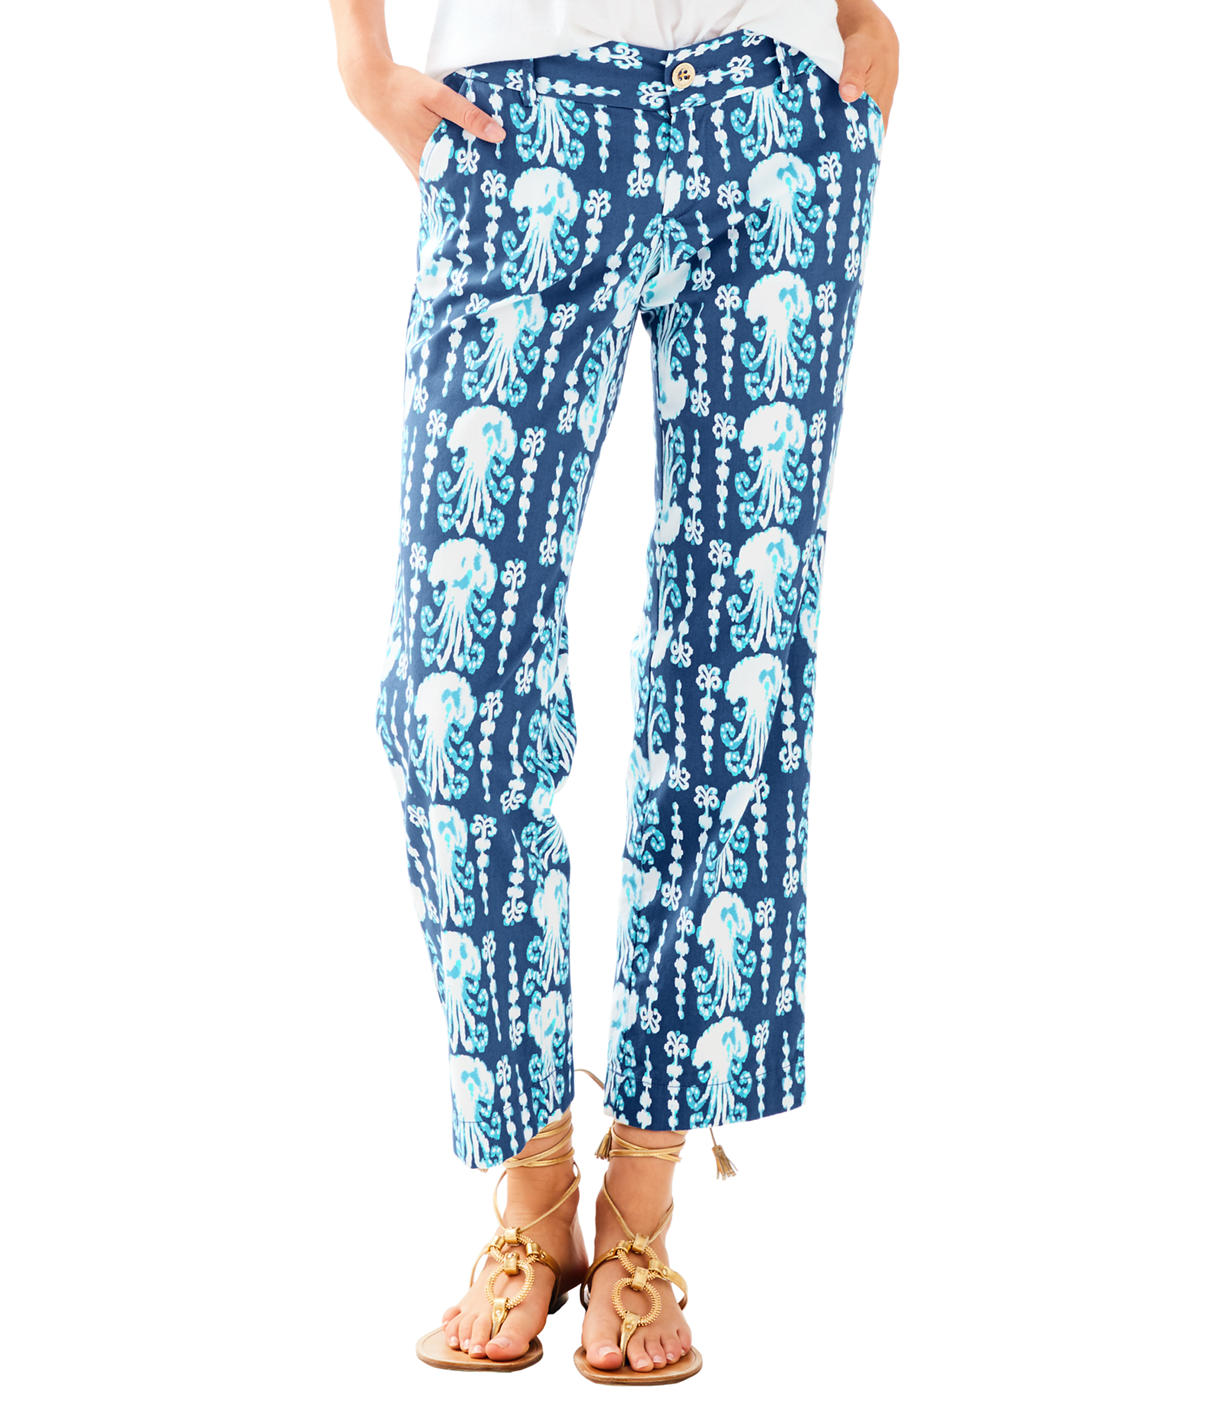 Lilly Pulitzer Cocoanut Walk Crop Pant